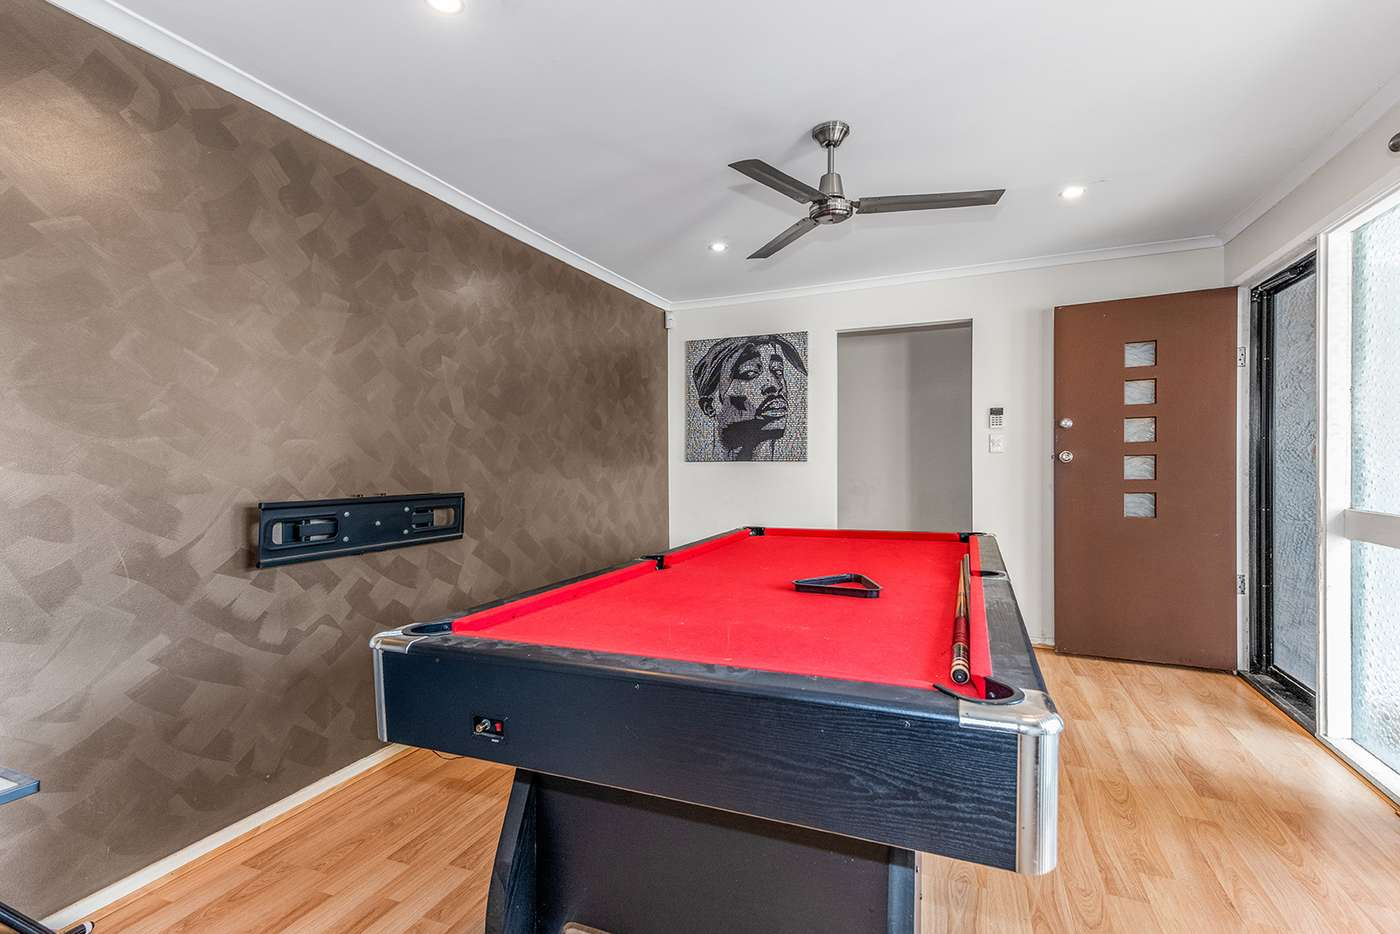 Fifth view of Homely house listing, 8 Sweetgum St, Hillcrest QLD 4118